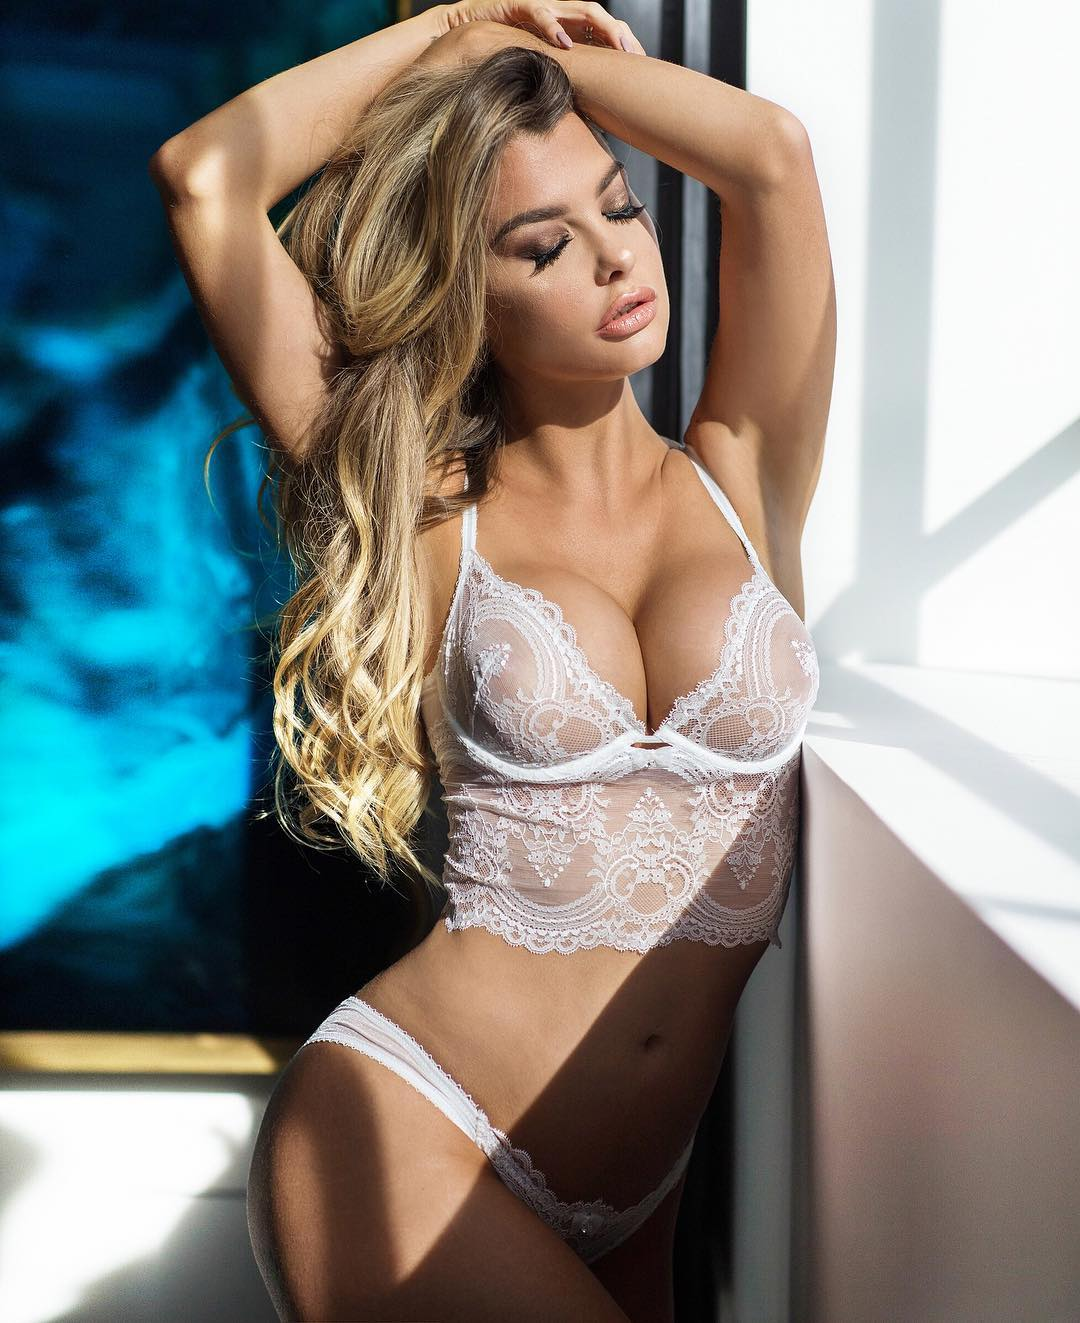 emily sears instagram